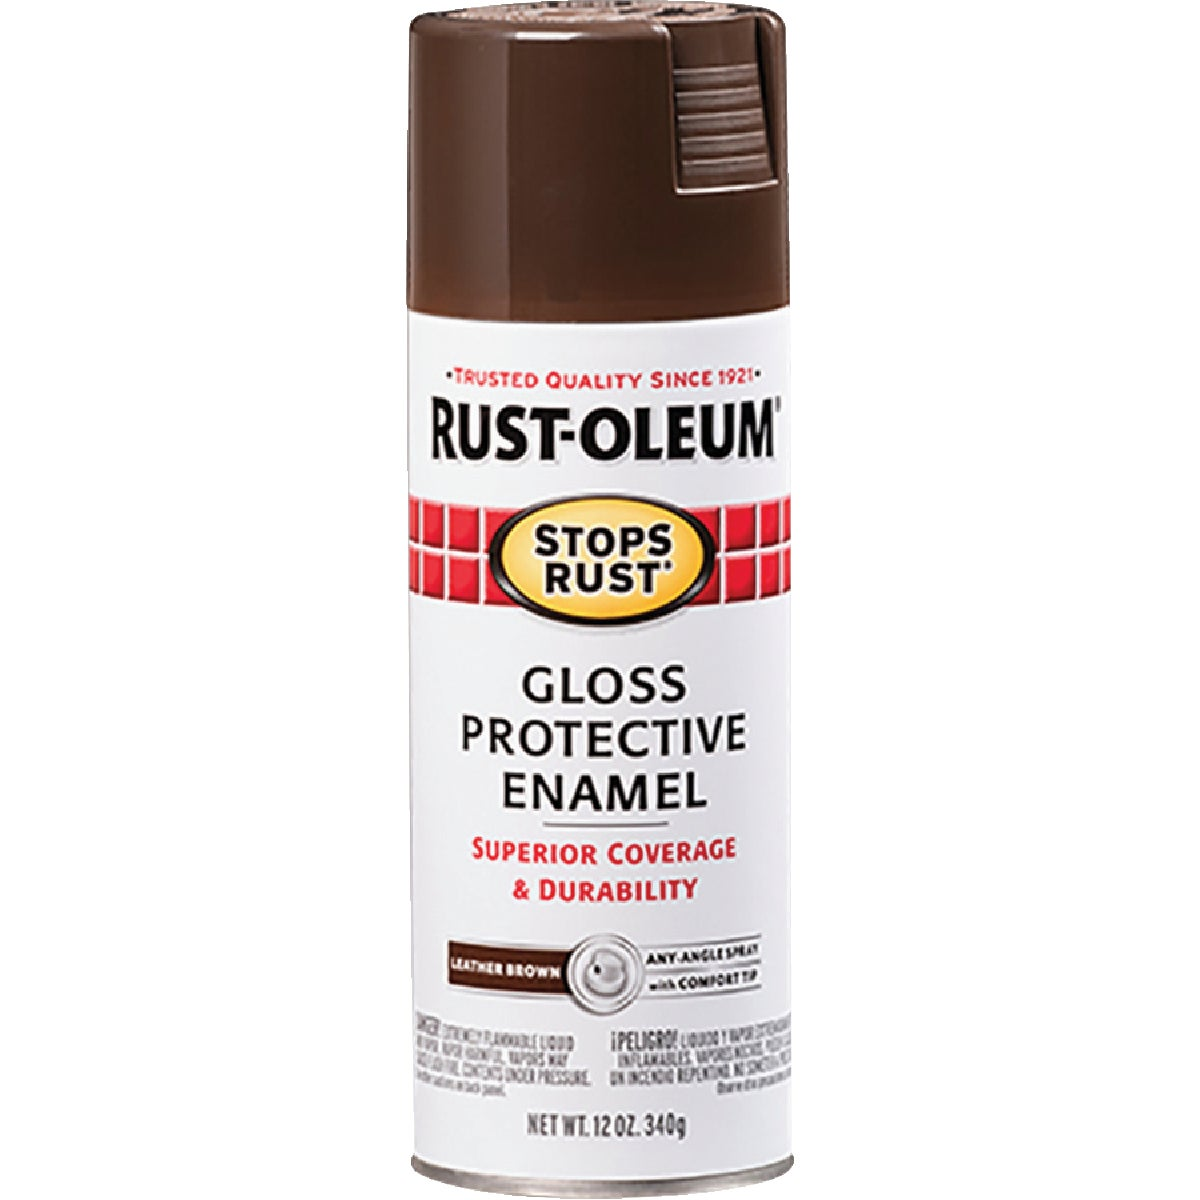 LEATHR BROWN SPRAY PAINT - 7775-830 by Rustoleum